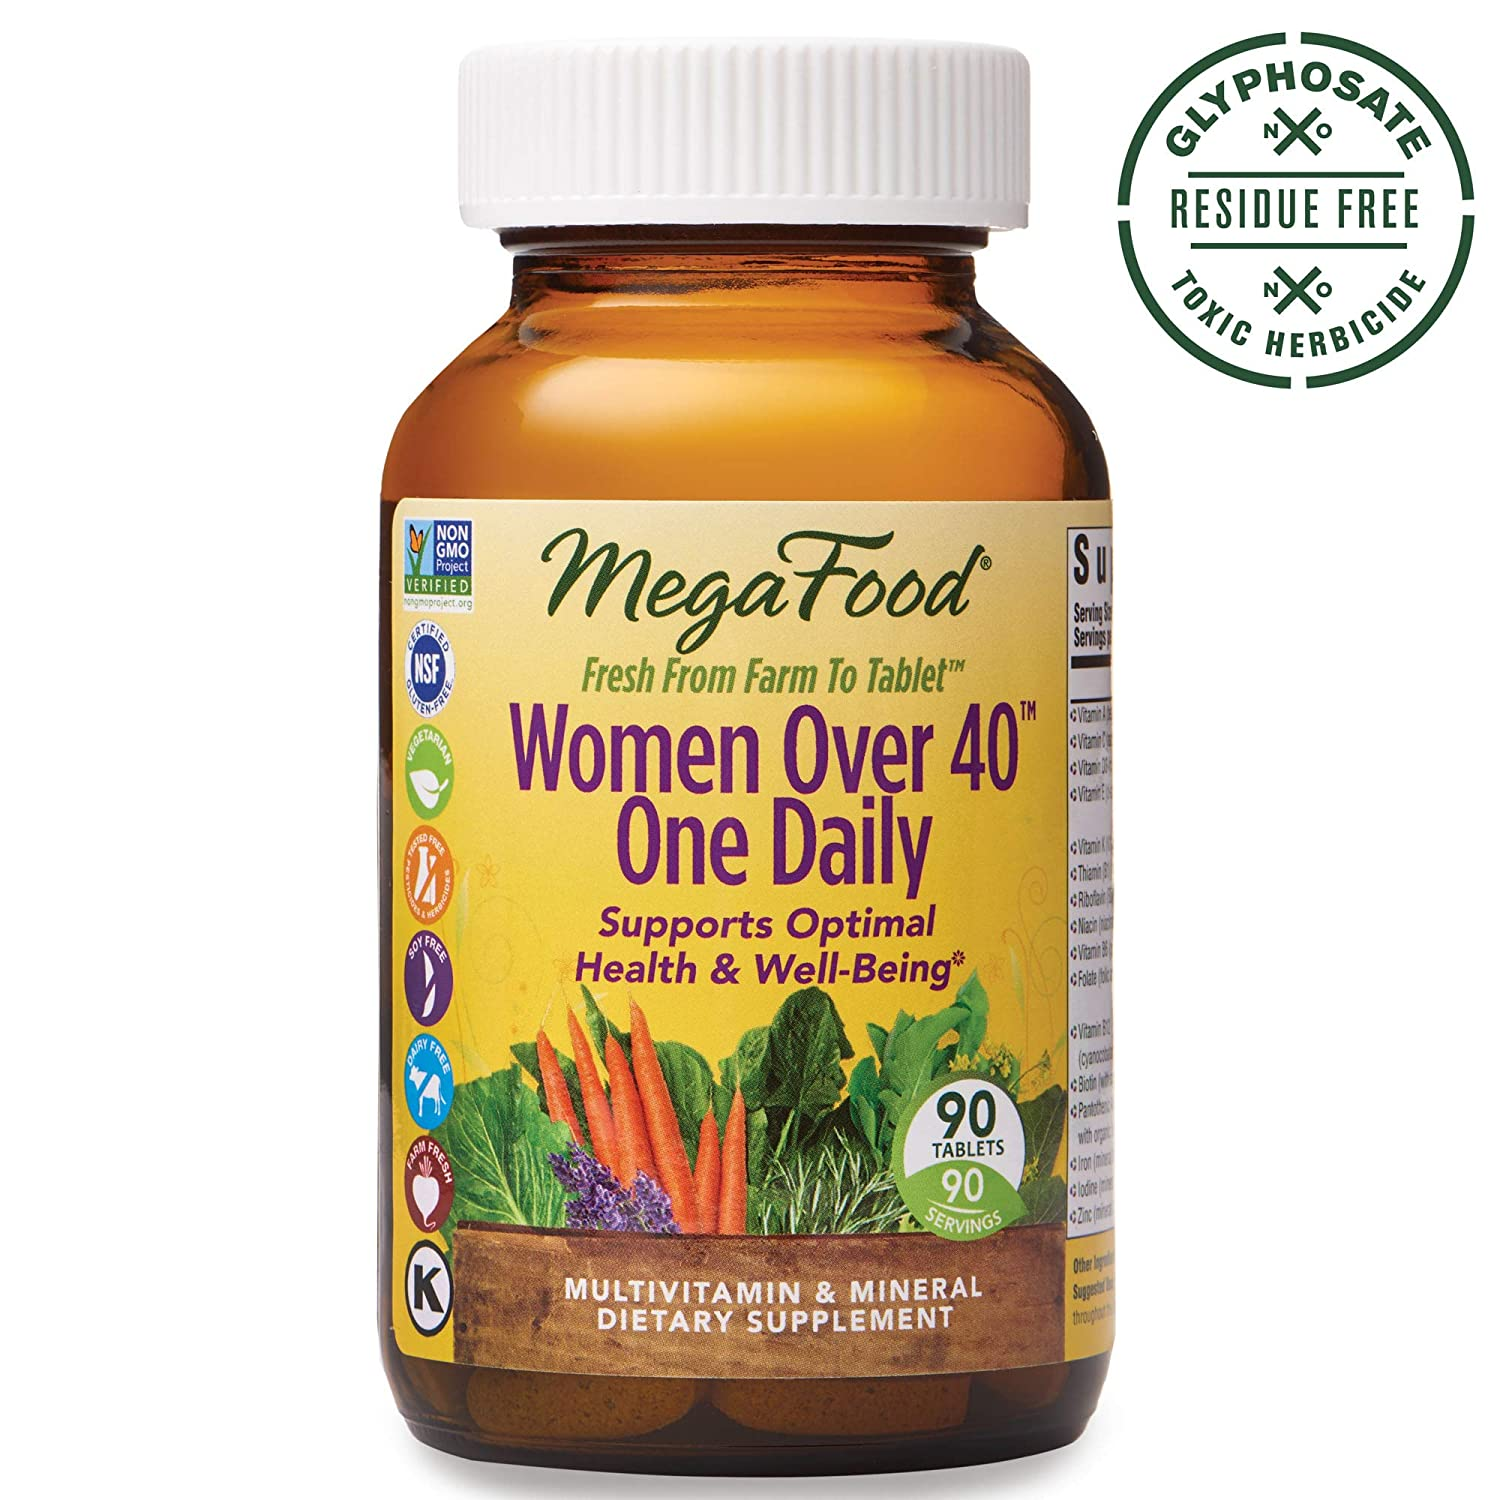 MegaFood, Women Over 40 One Daily, Daily Multivitamin and Mineral Dietary Supplement with Vitamins C, D, Folate, Biotin and Iron, Non-GMO, Vegetarian, 90 Tablets 90 Servings FFP